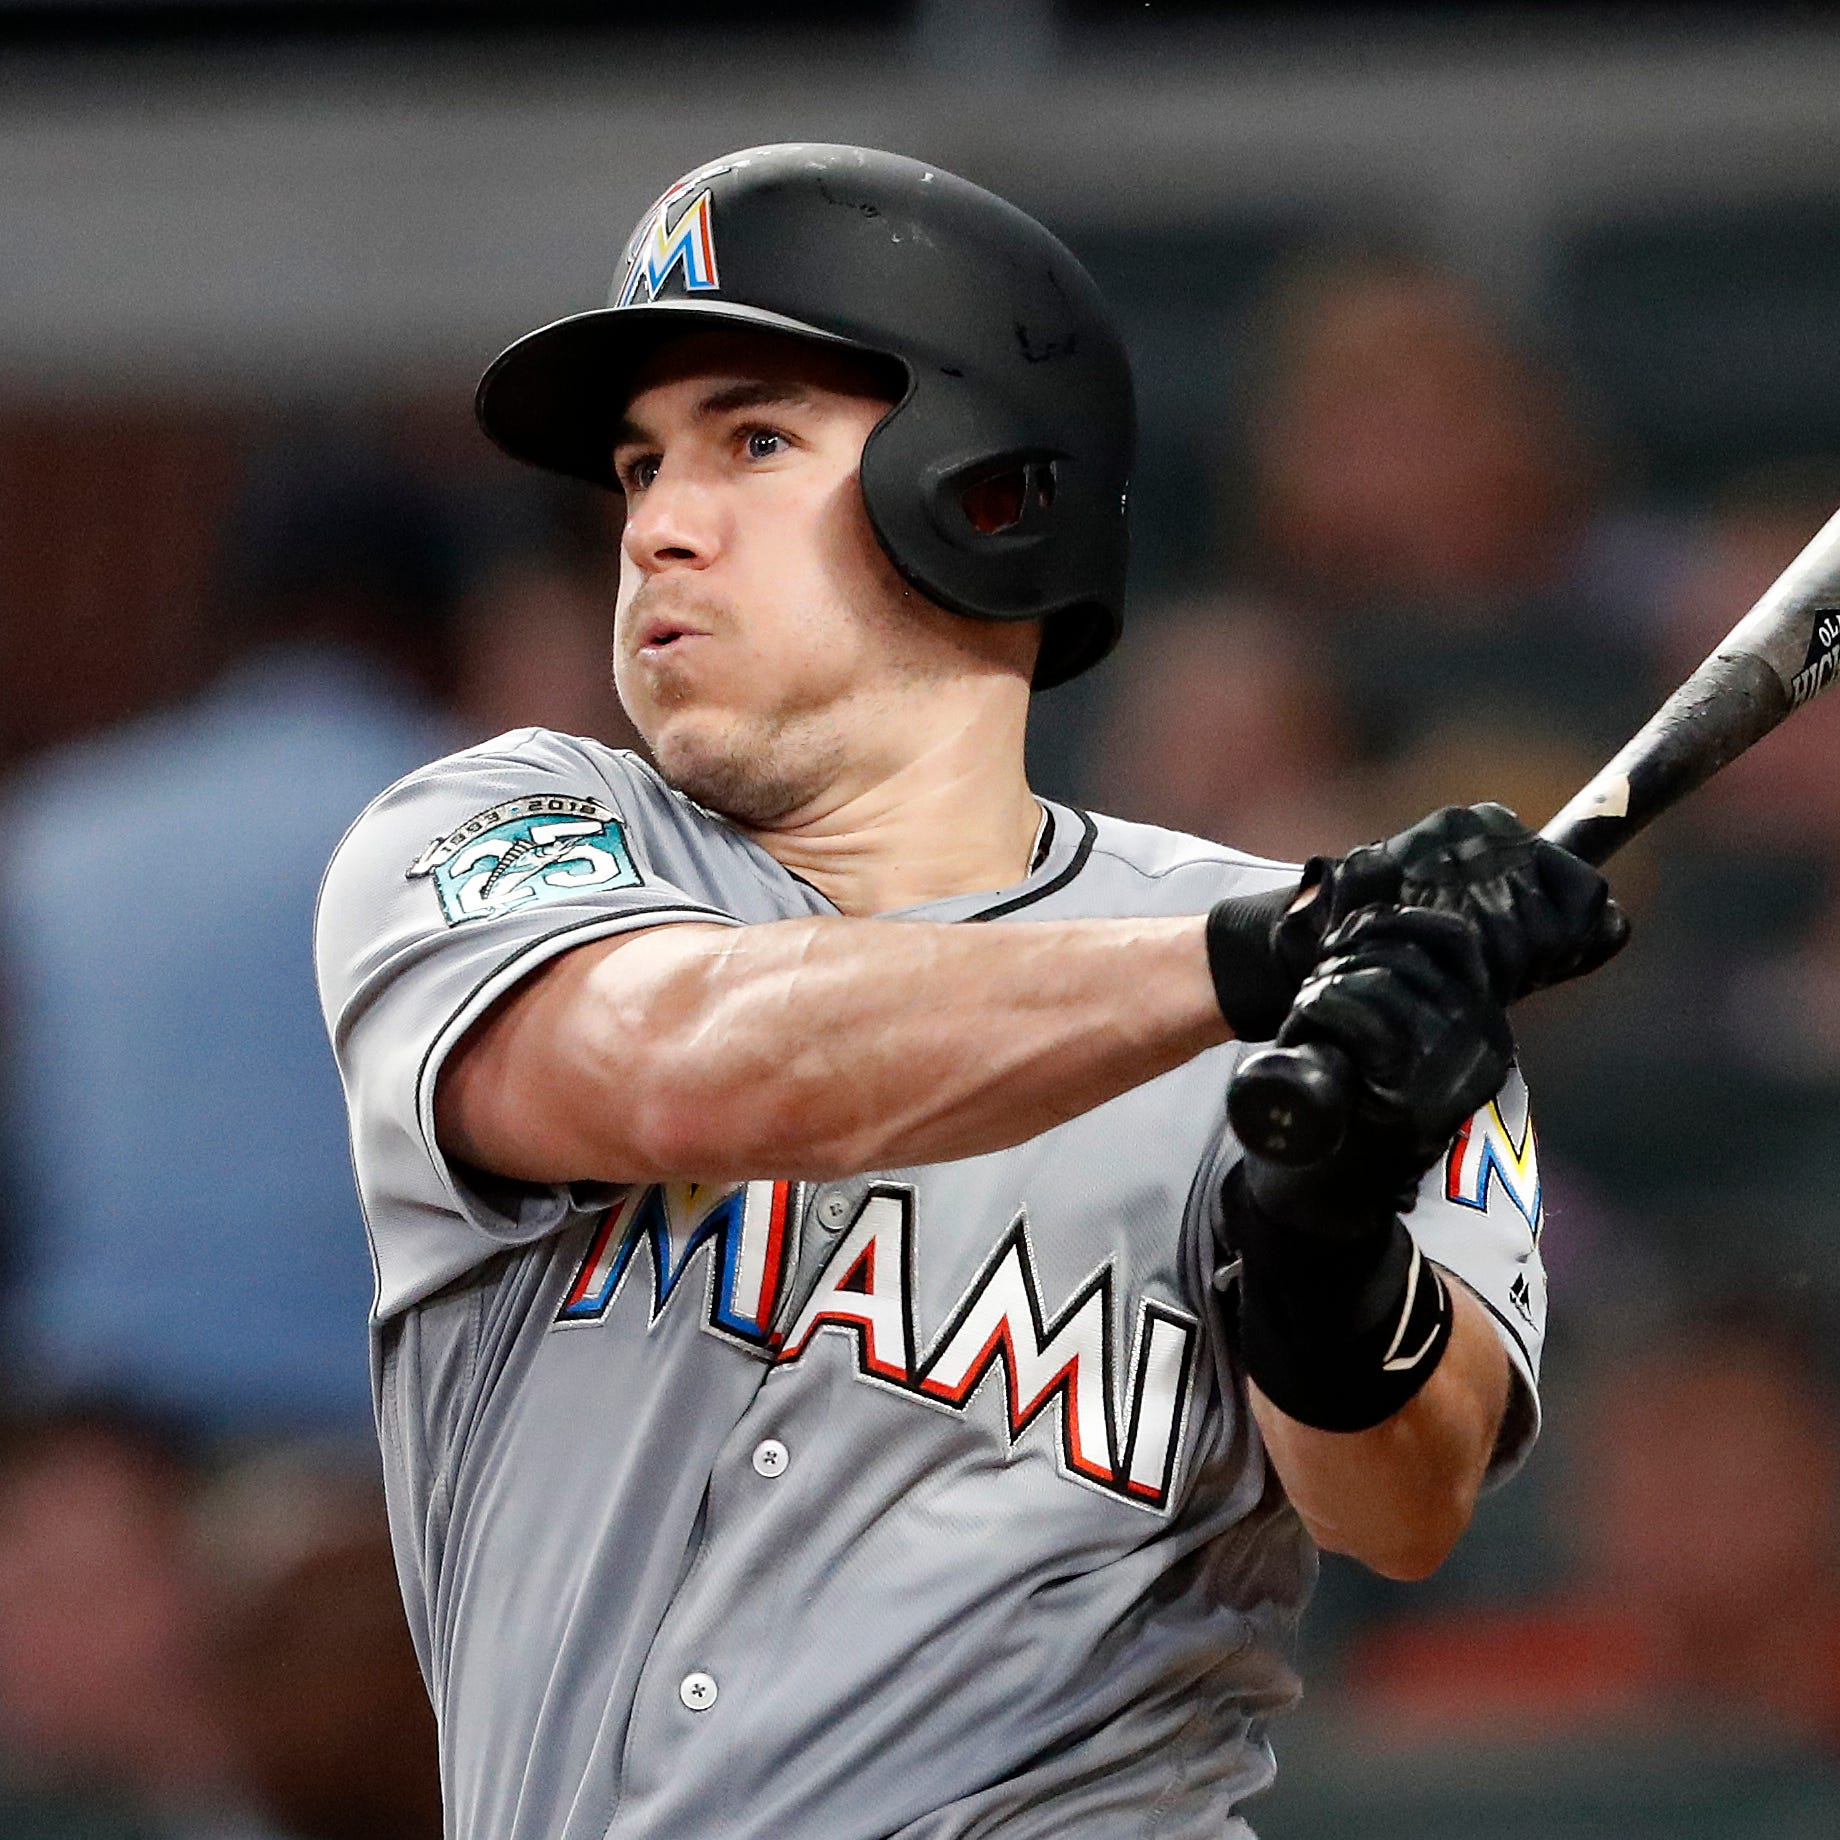 Thursday's baseball: Phillies get top catcher Realmuto from Marlins for three players